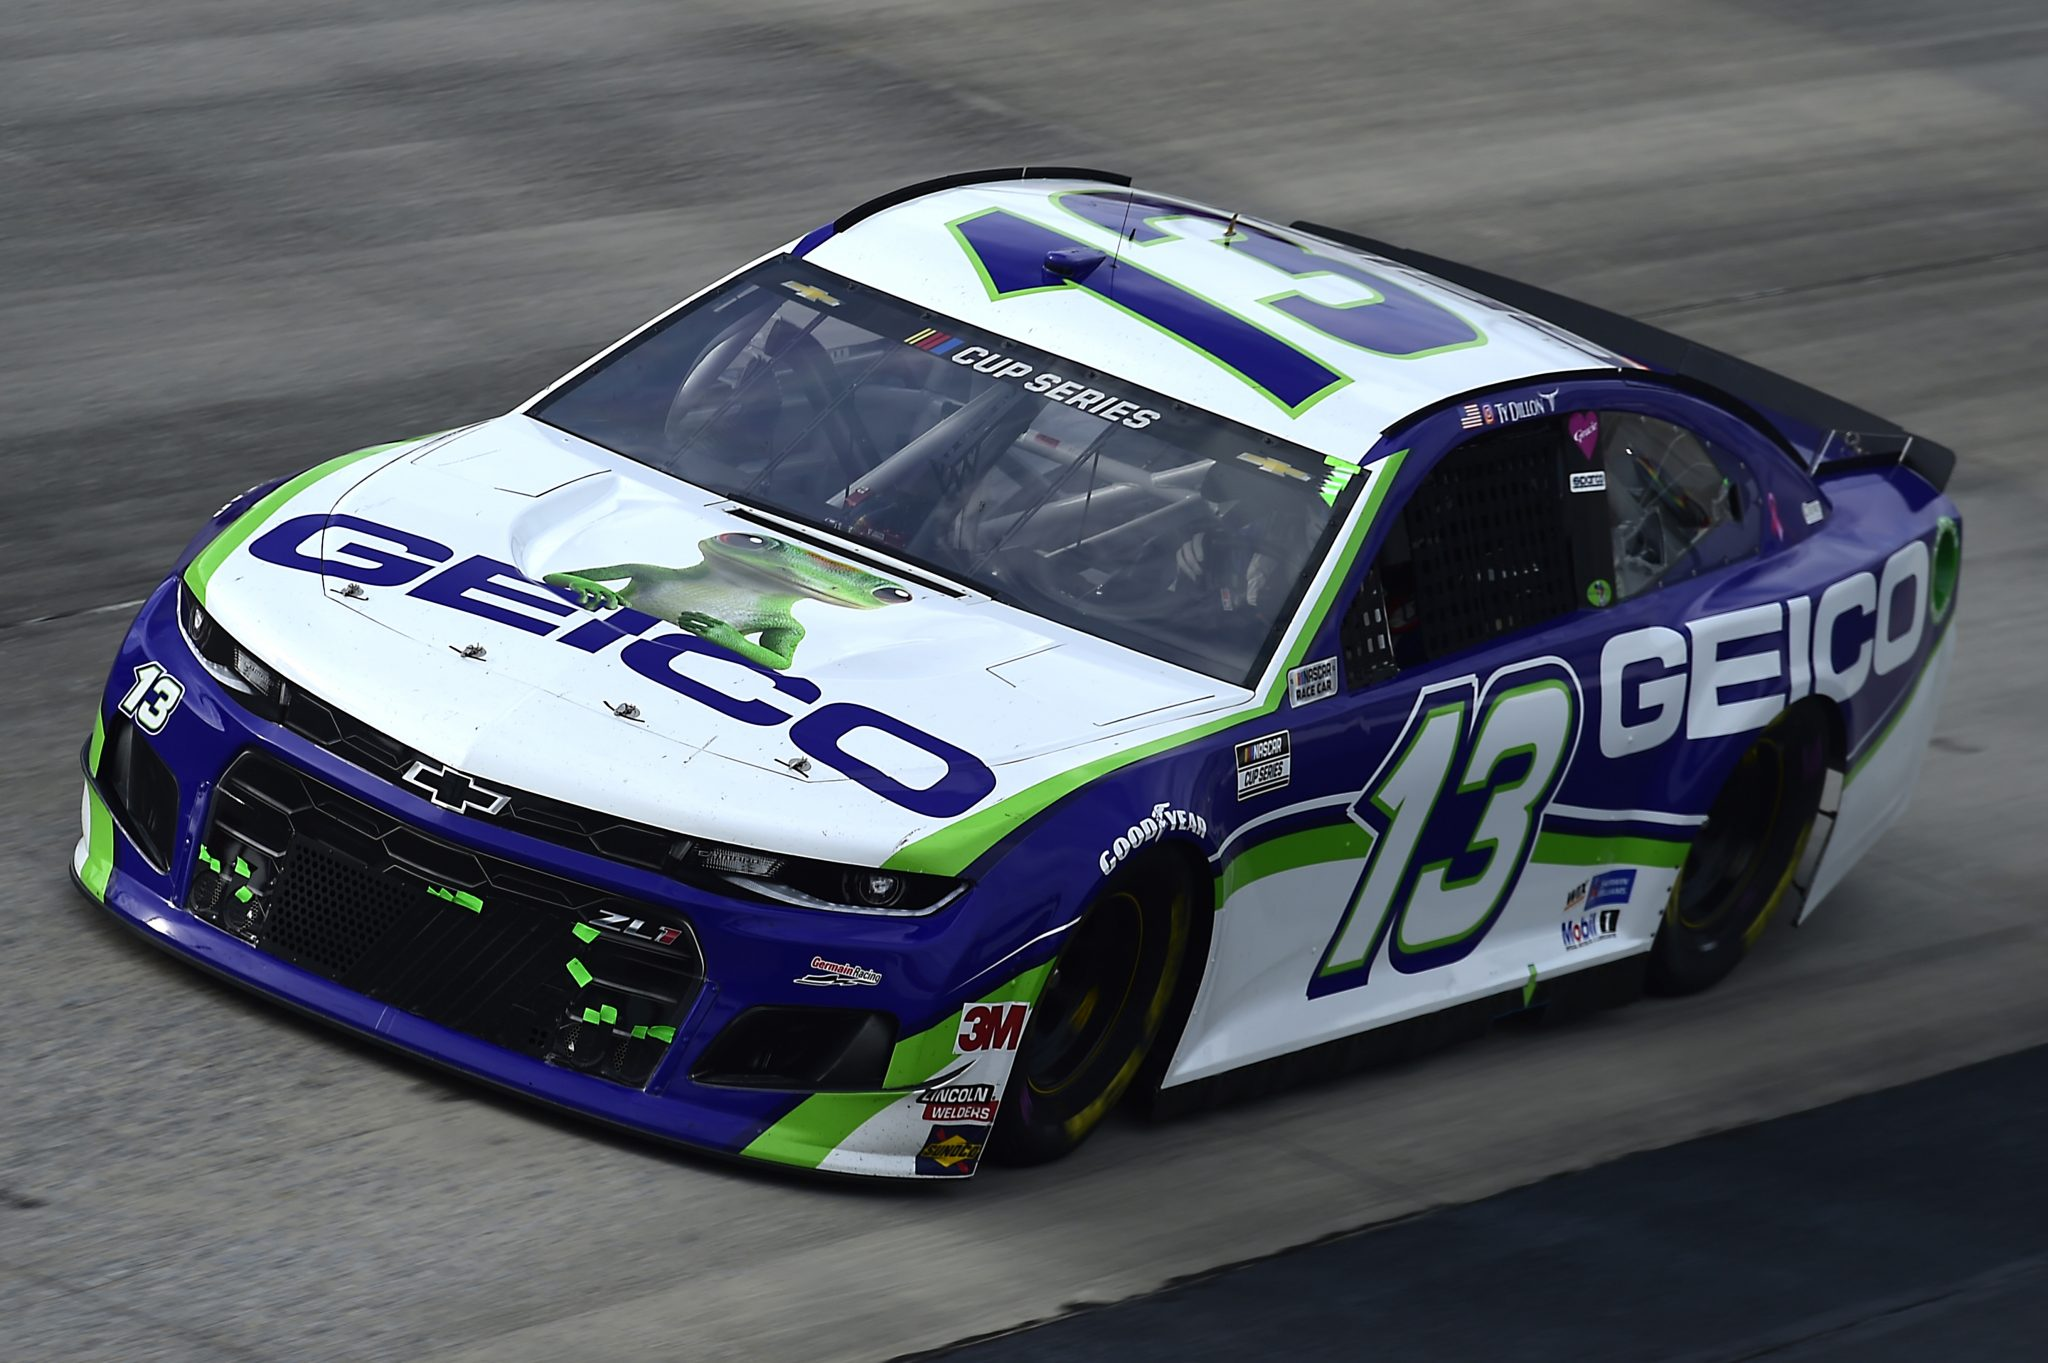 DOVER, DELAWARE - AUGUST 22: Ty Dillon, driver of the #13 GEICO Chevrolet, drives during the NASCAR Cup Series Drydene 311 at Dover International Speedway on August 22, 2020 in Dover, Delaware. (Photo by Jared C. Tilton/Getty Images) | Getty Images